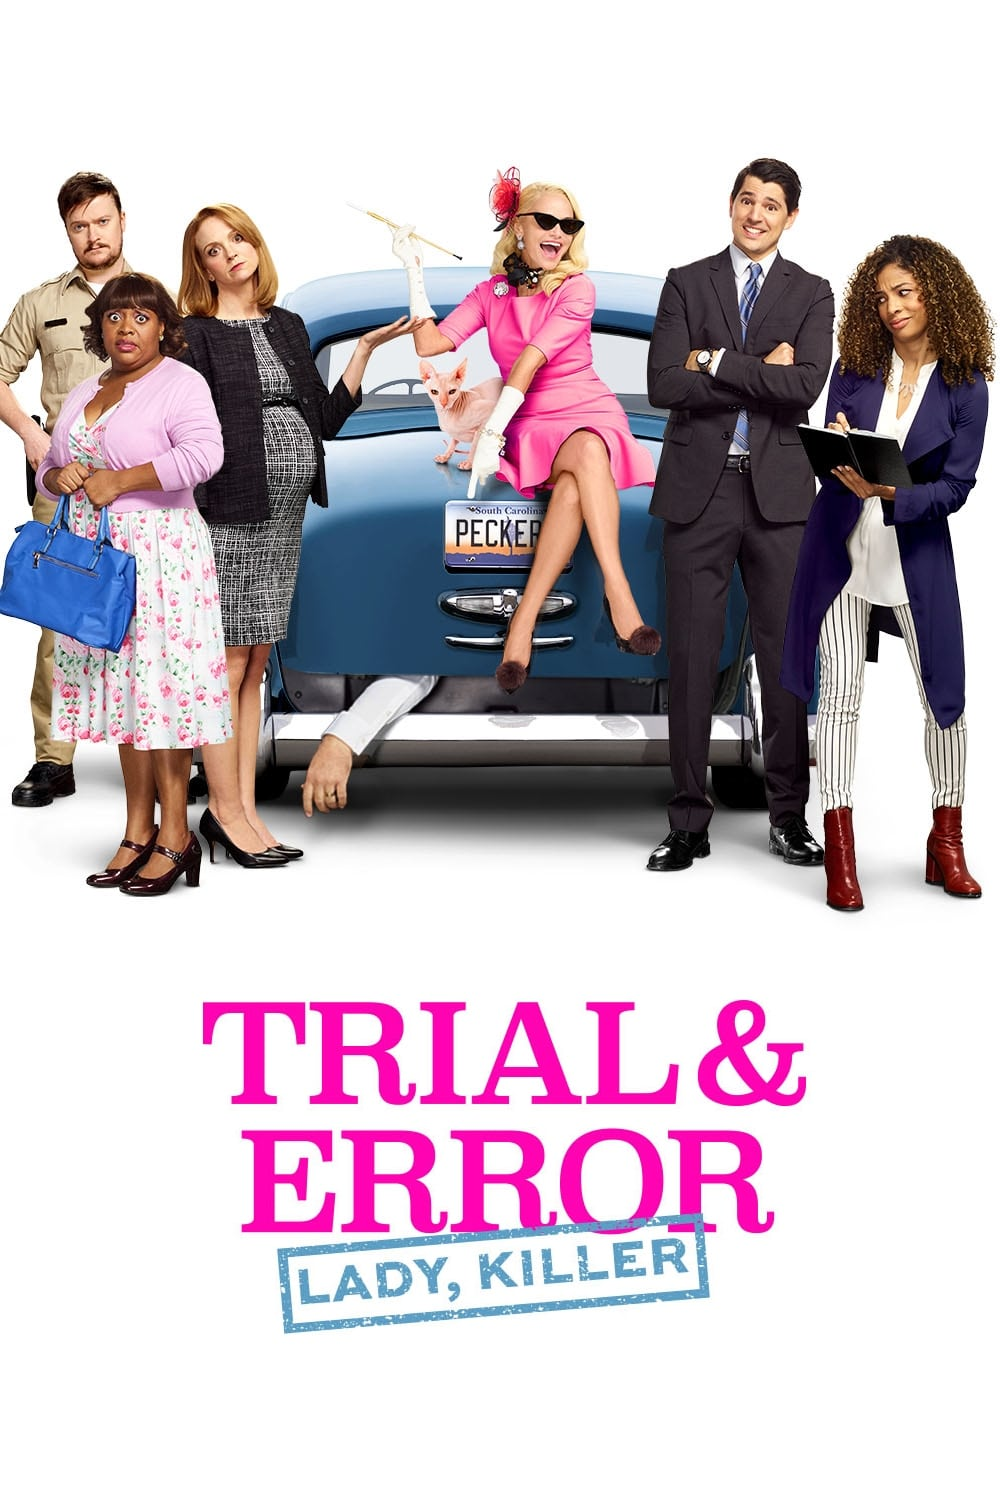 image for Trial & Error